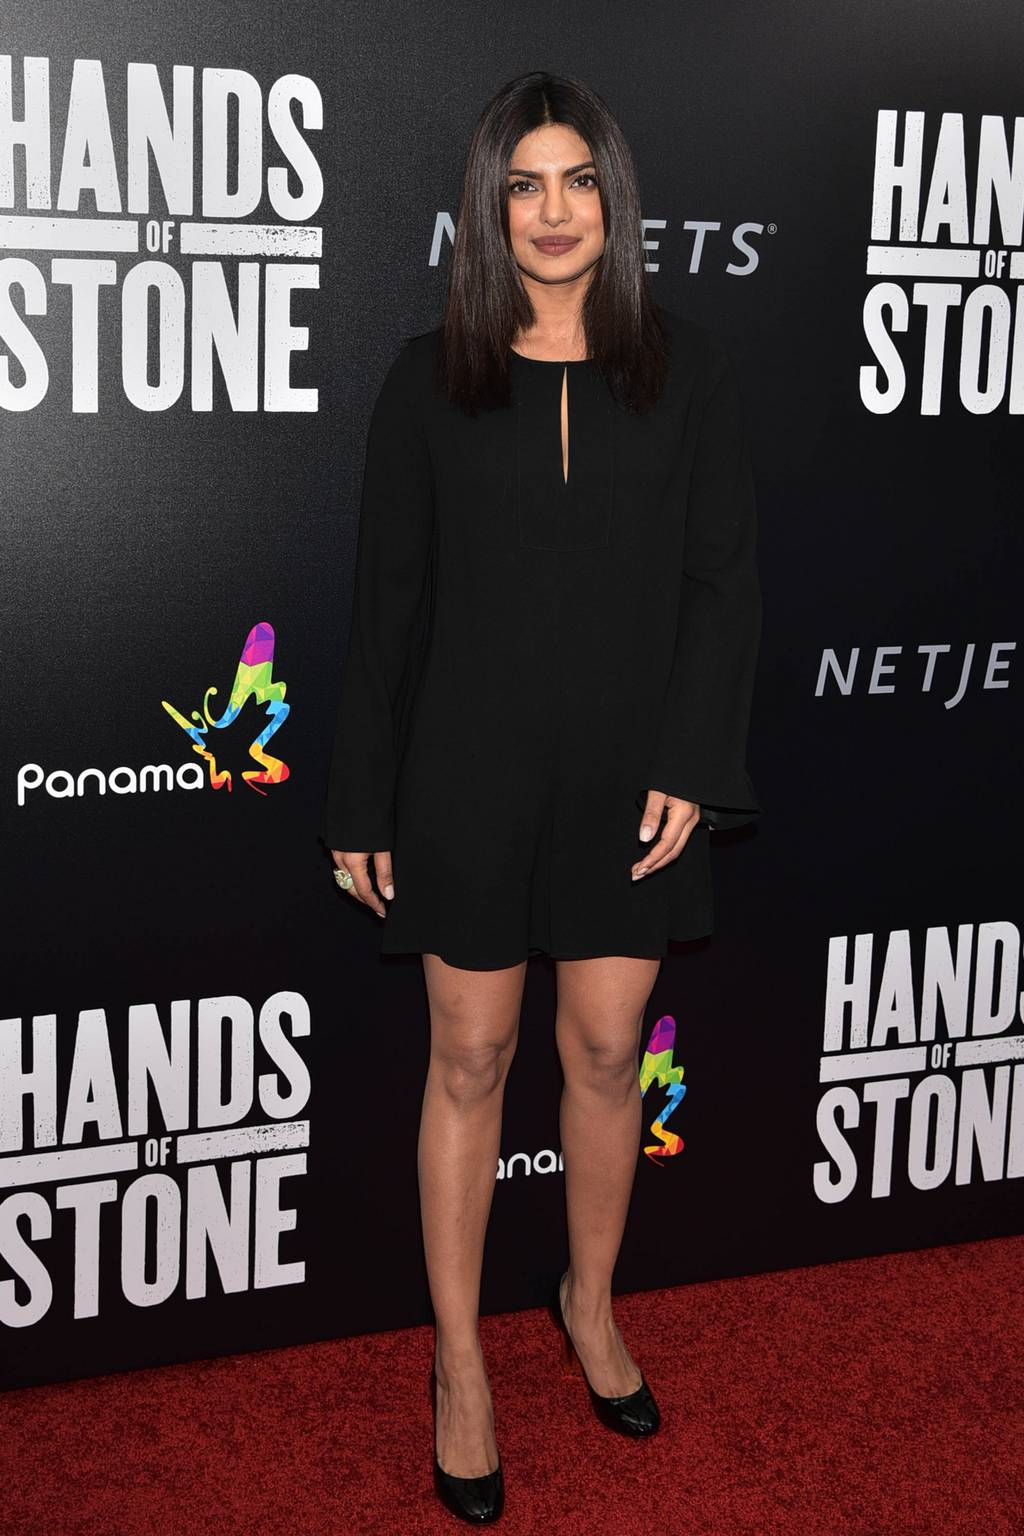 Priyanka Chopra – Hands of Stone Film Premiere in New York on August 22, 2016